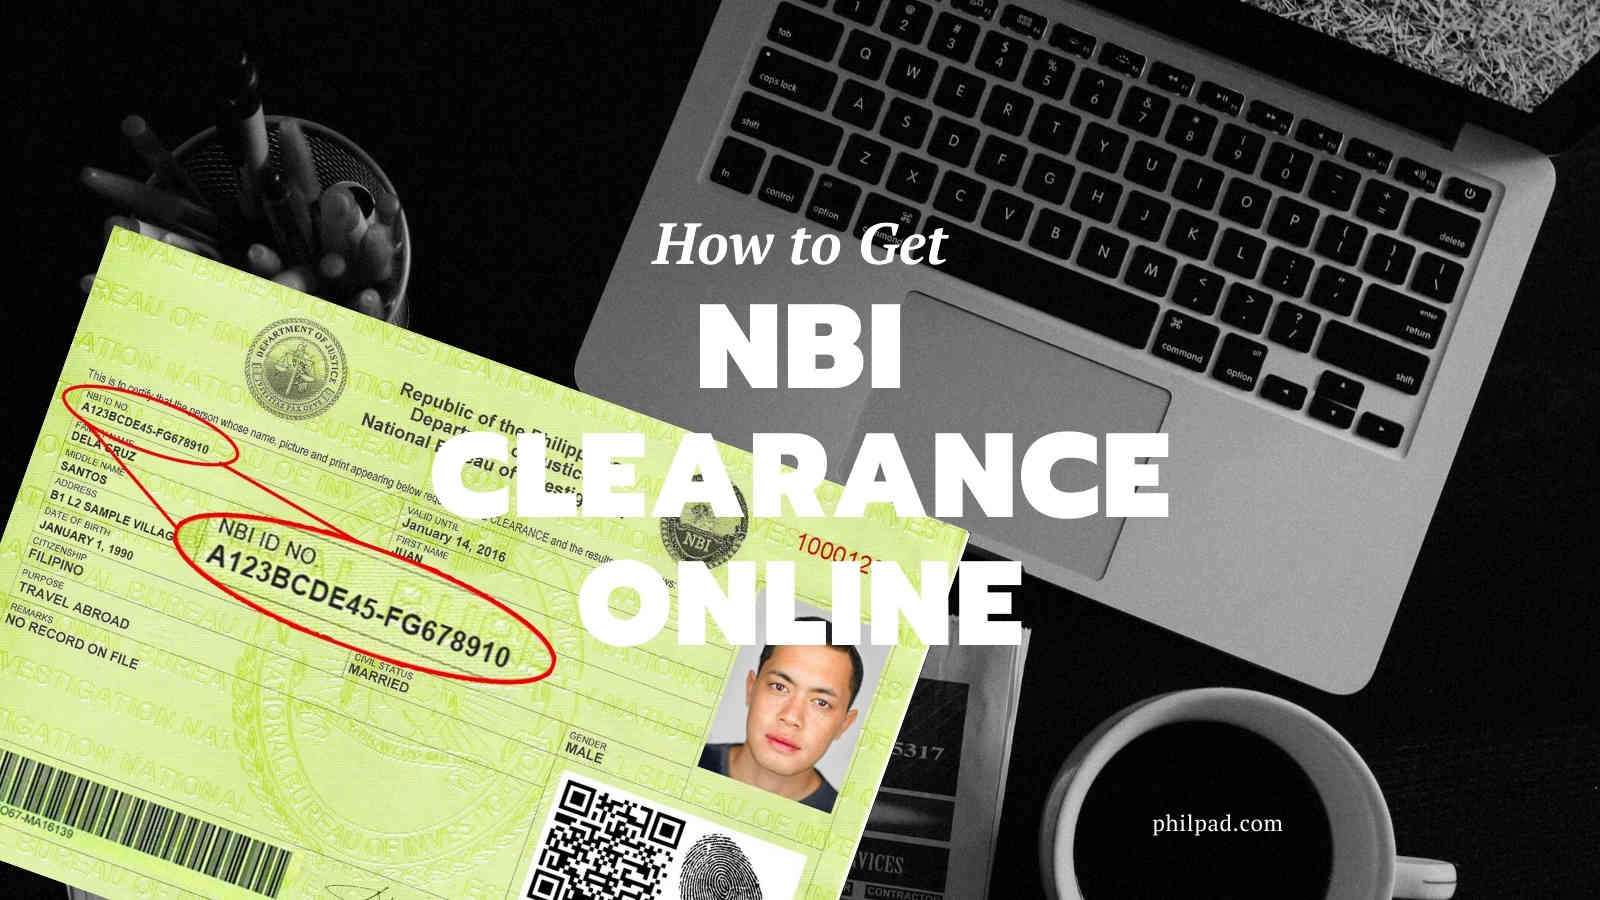 how to get nbi clearance online 2021